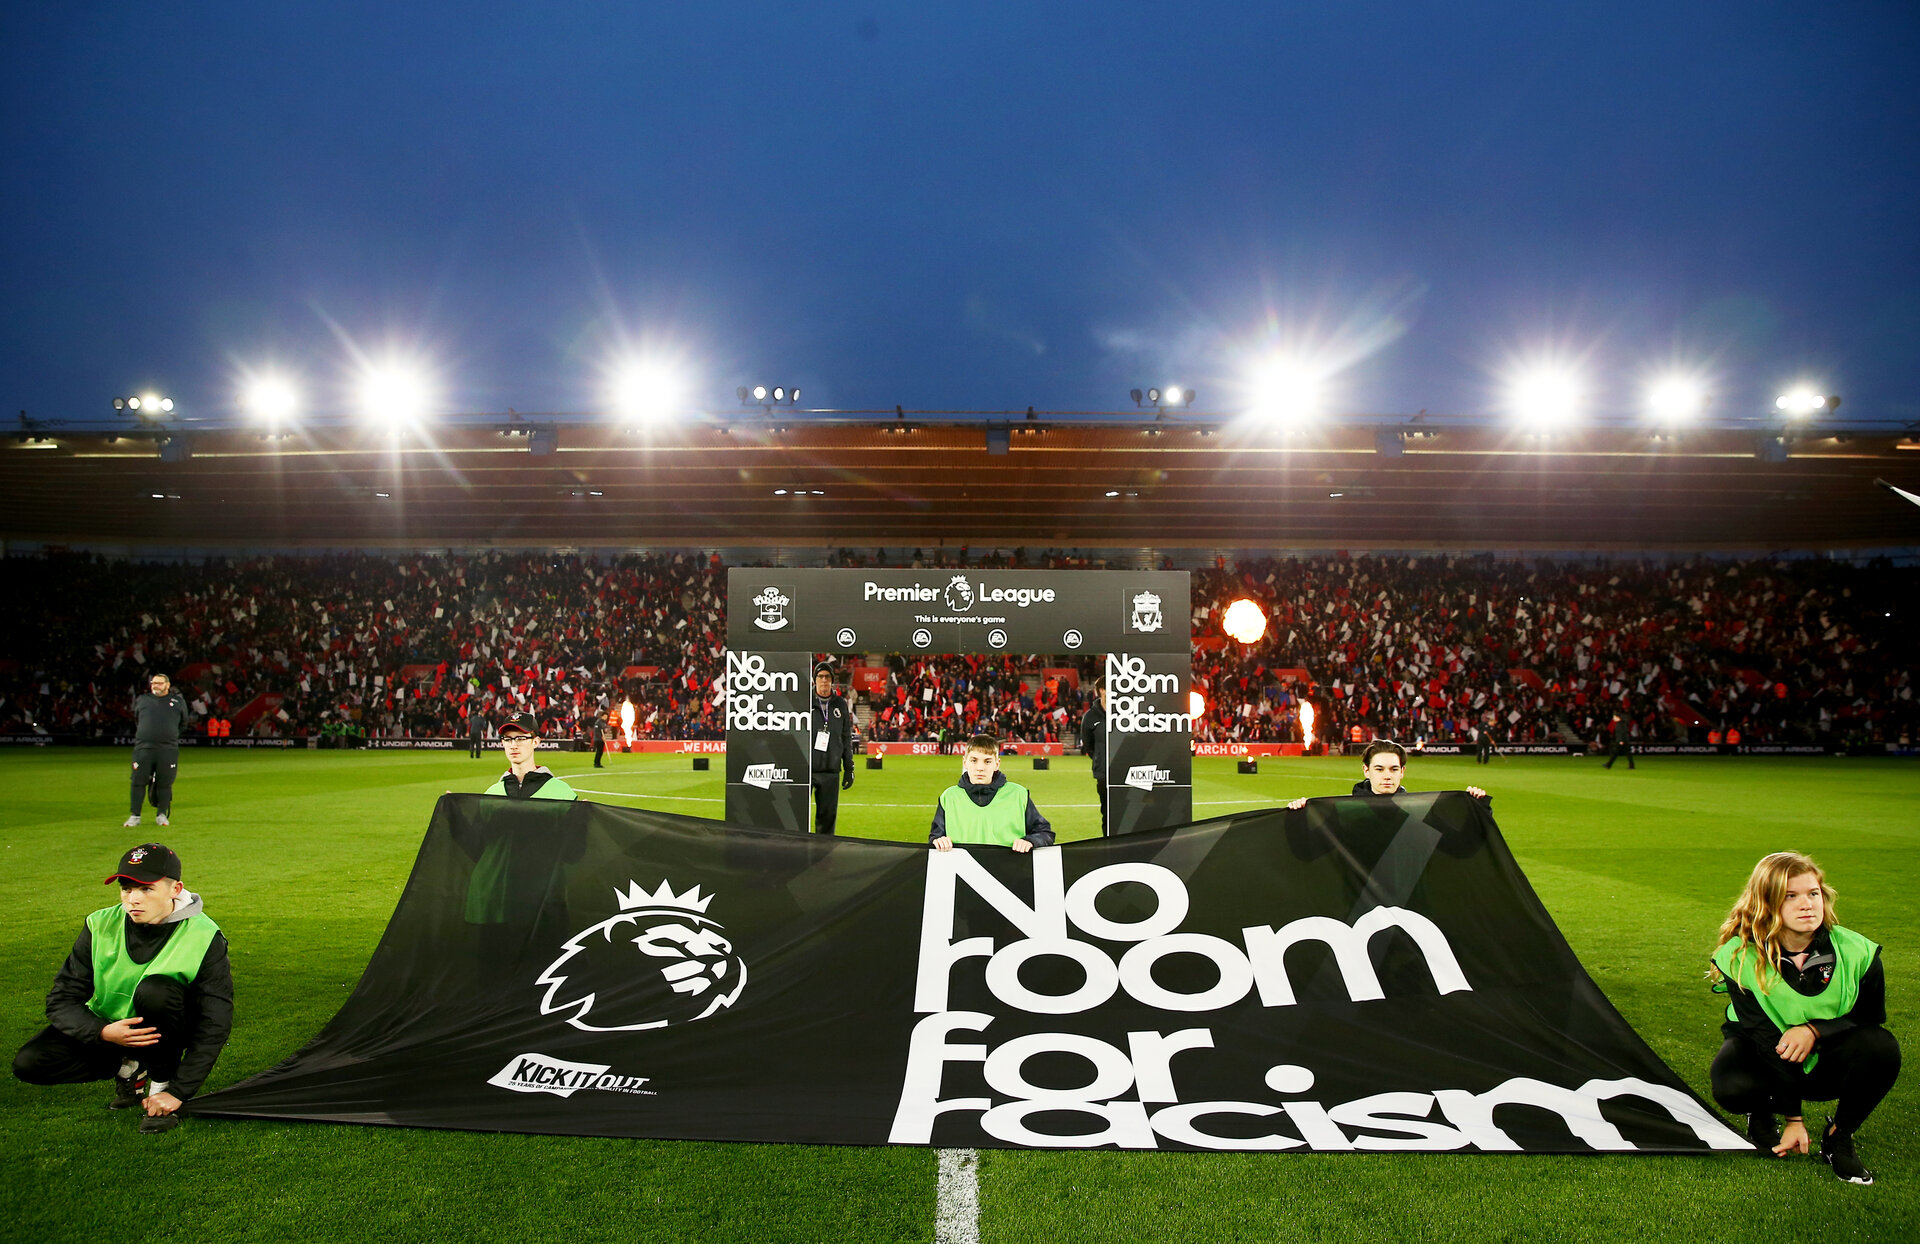 SOUTHAMPTON, ENGLAND - APRIL 05: A 'No Room for Racism' flag during the Premier League match between Southampton FC and Liverpool FC at St Mary's Stadium on April 6, 2019 in Southampton, United Kingdom. (Photo by Matt Watson/Southampton FC via Getty Images)